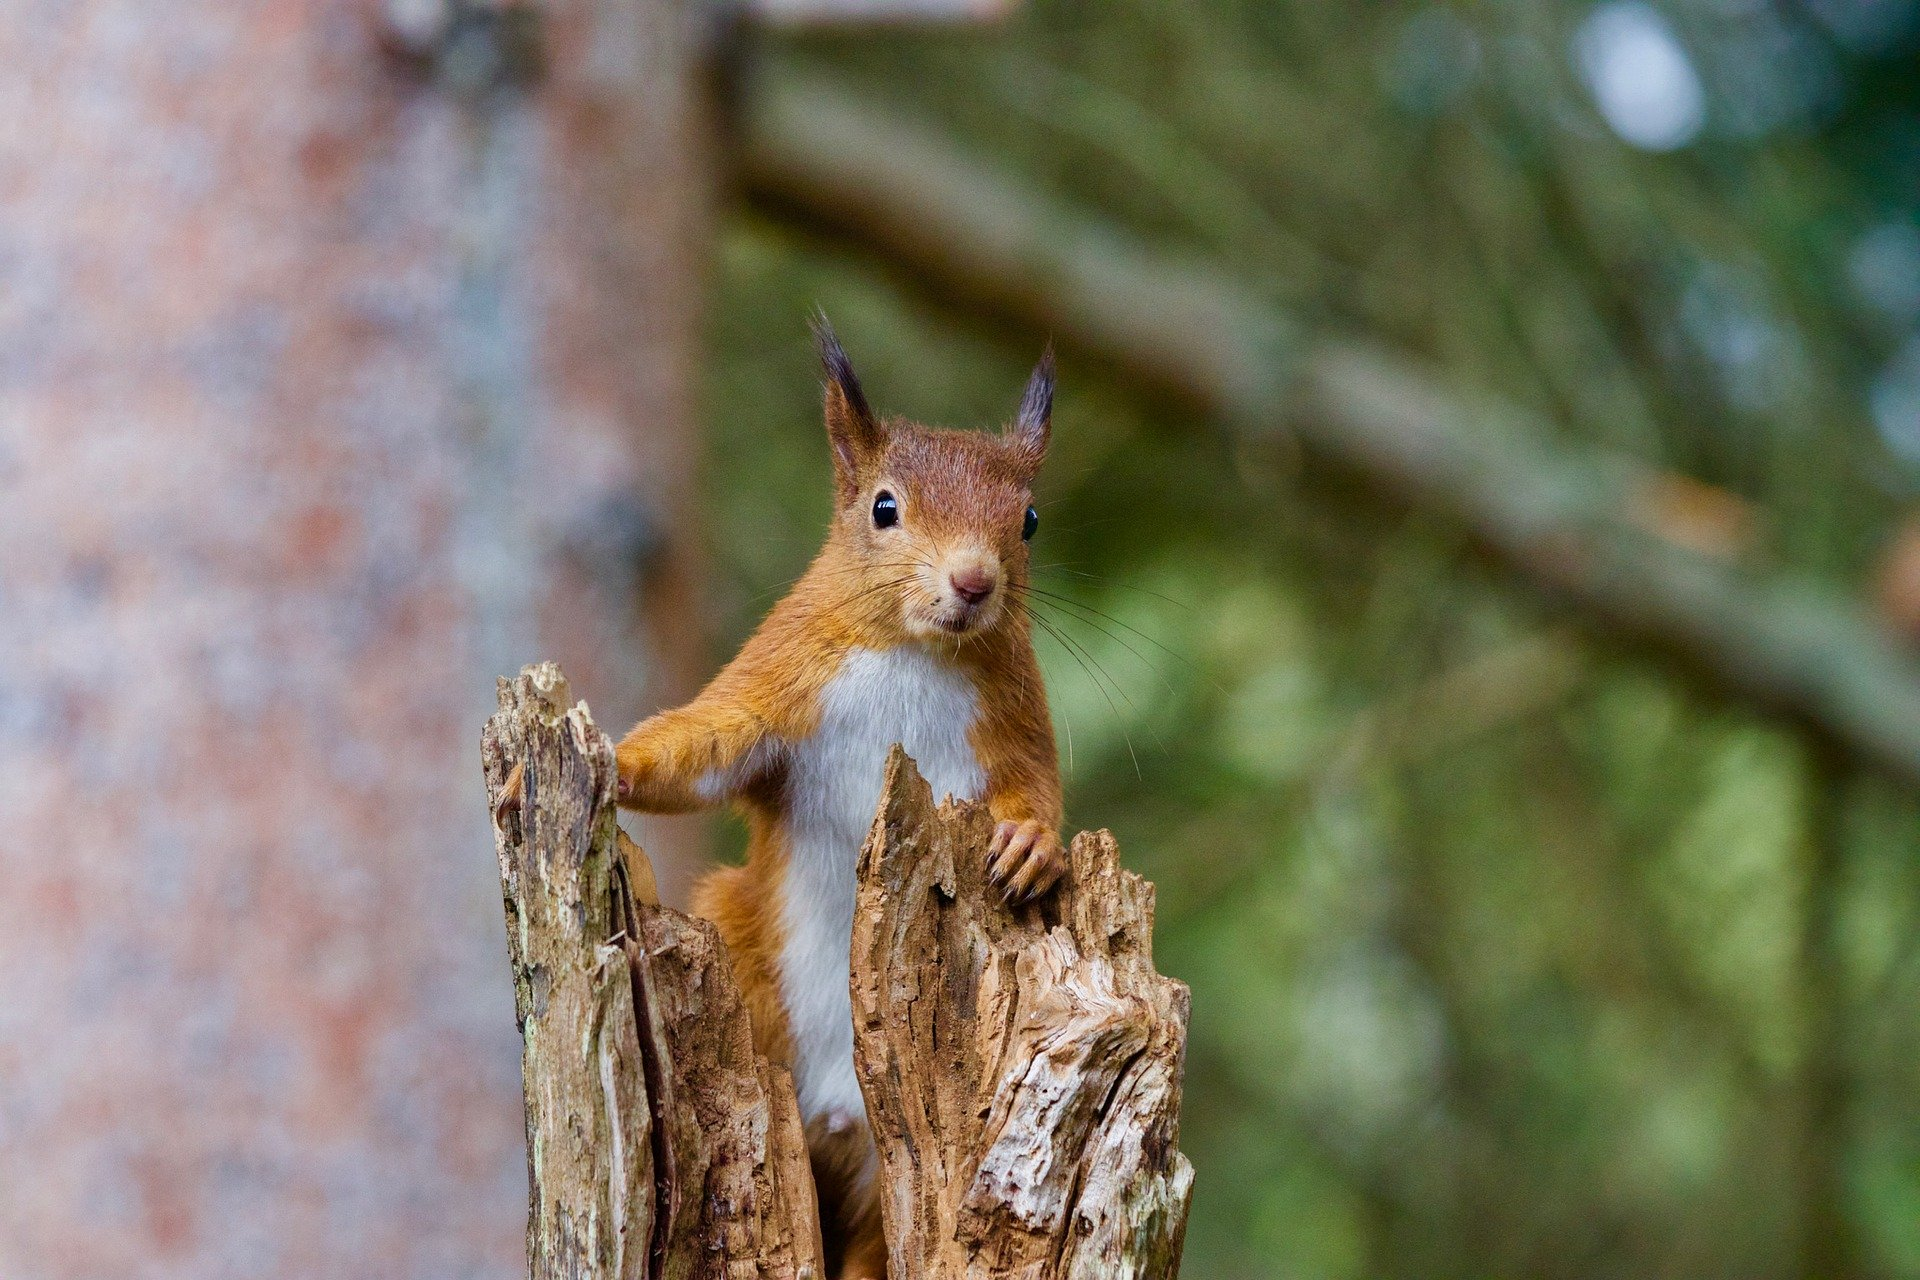 Image of a red squirrel sitting in a tree.